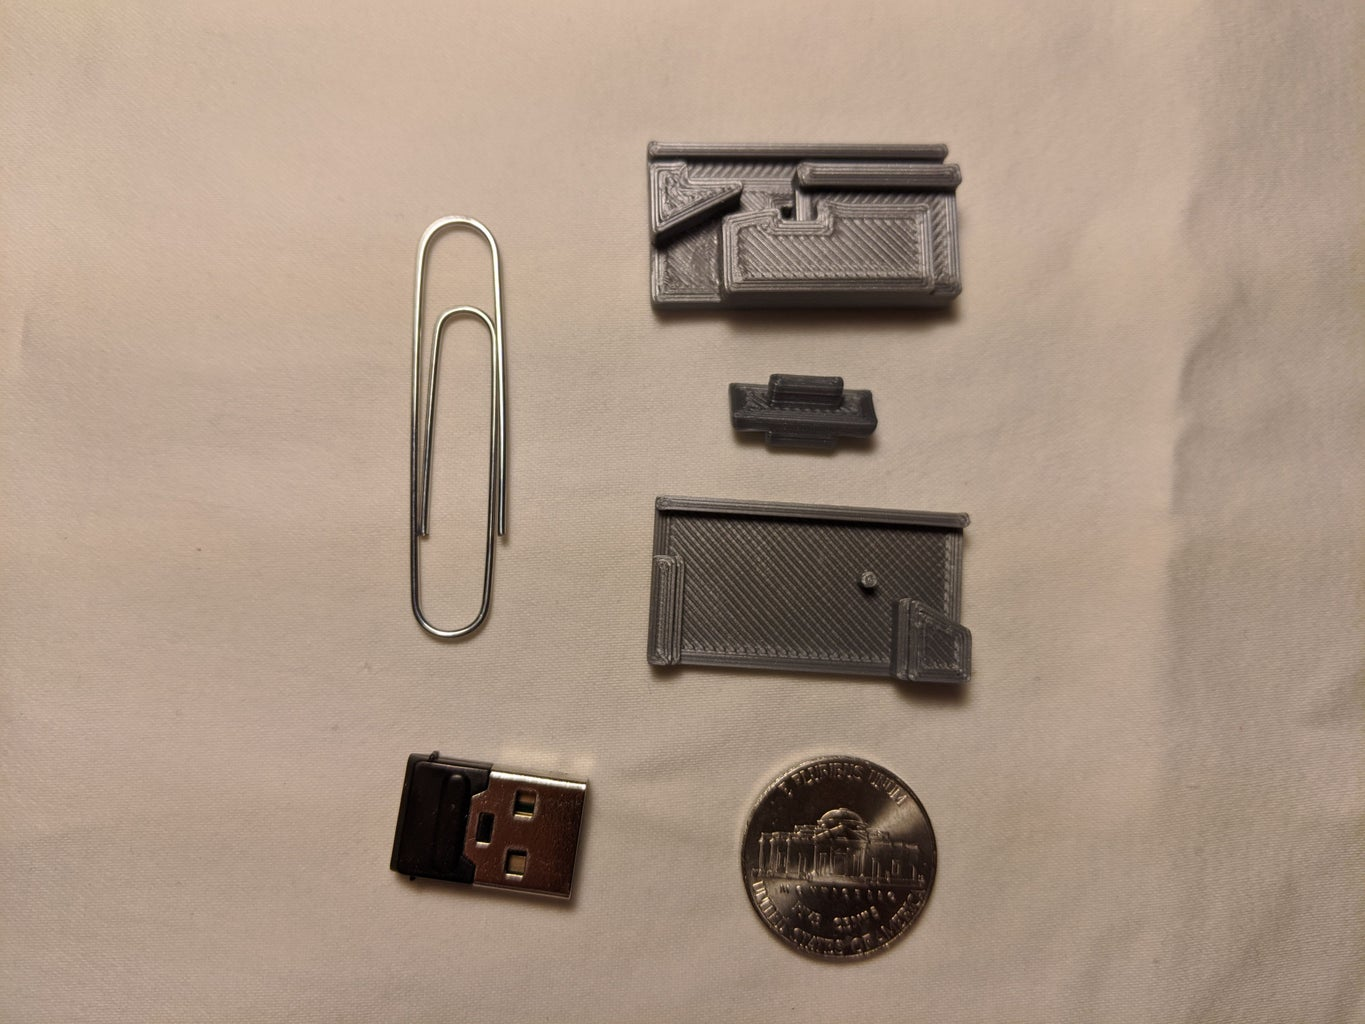 3D-Printed Electric Slide Switch (Using Only a Paperclip)